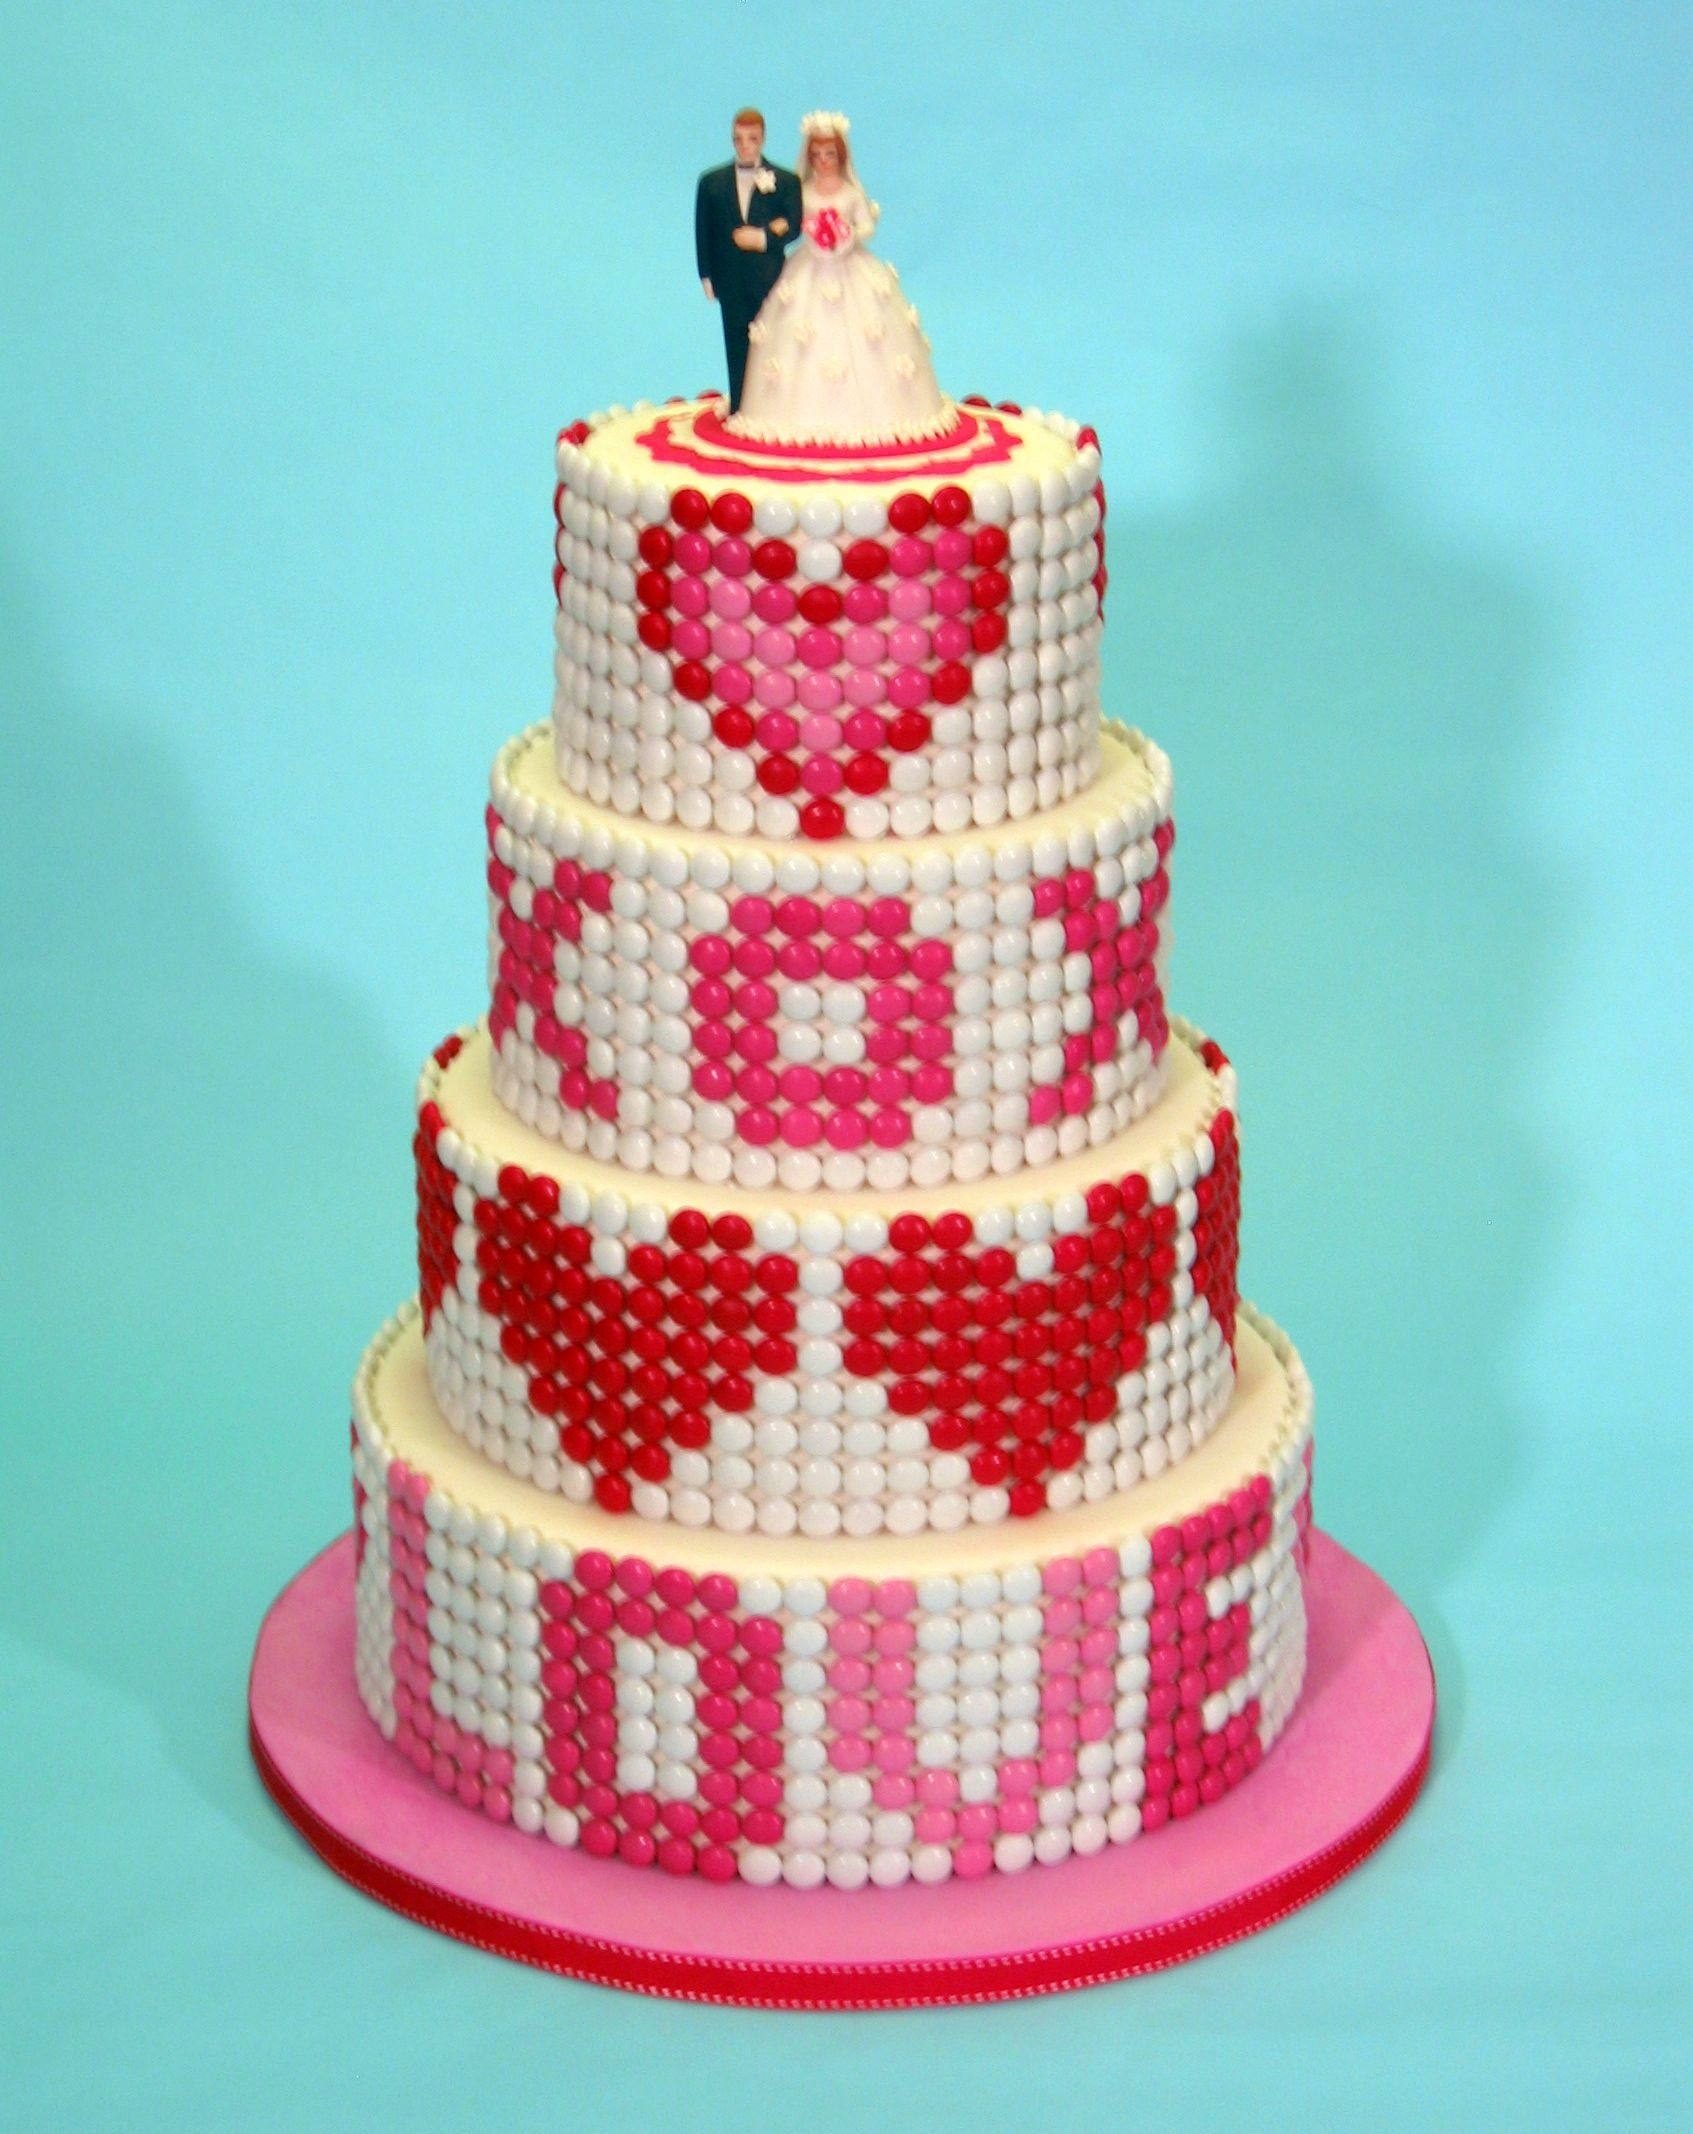 My Candy Valentine Red, pink and white M&M candies adorn the outside of this romantic Valentine's Day wedding cake.